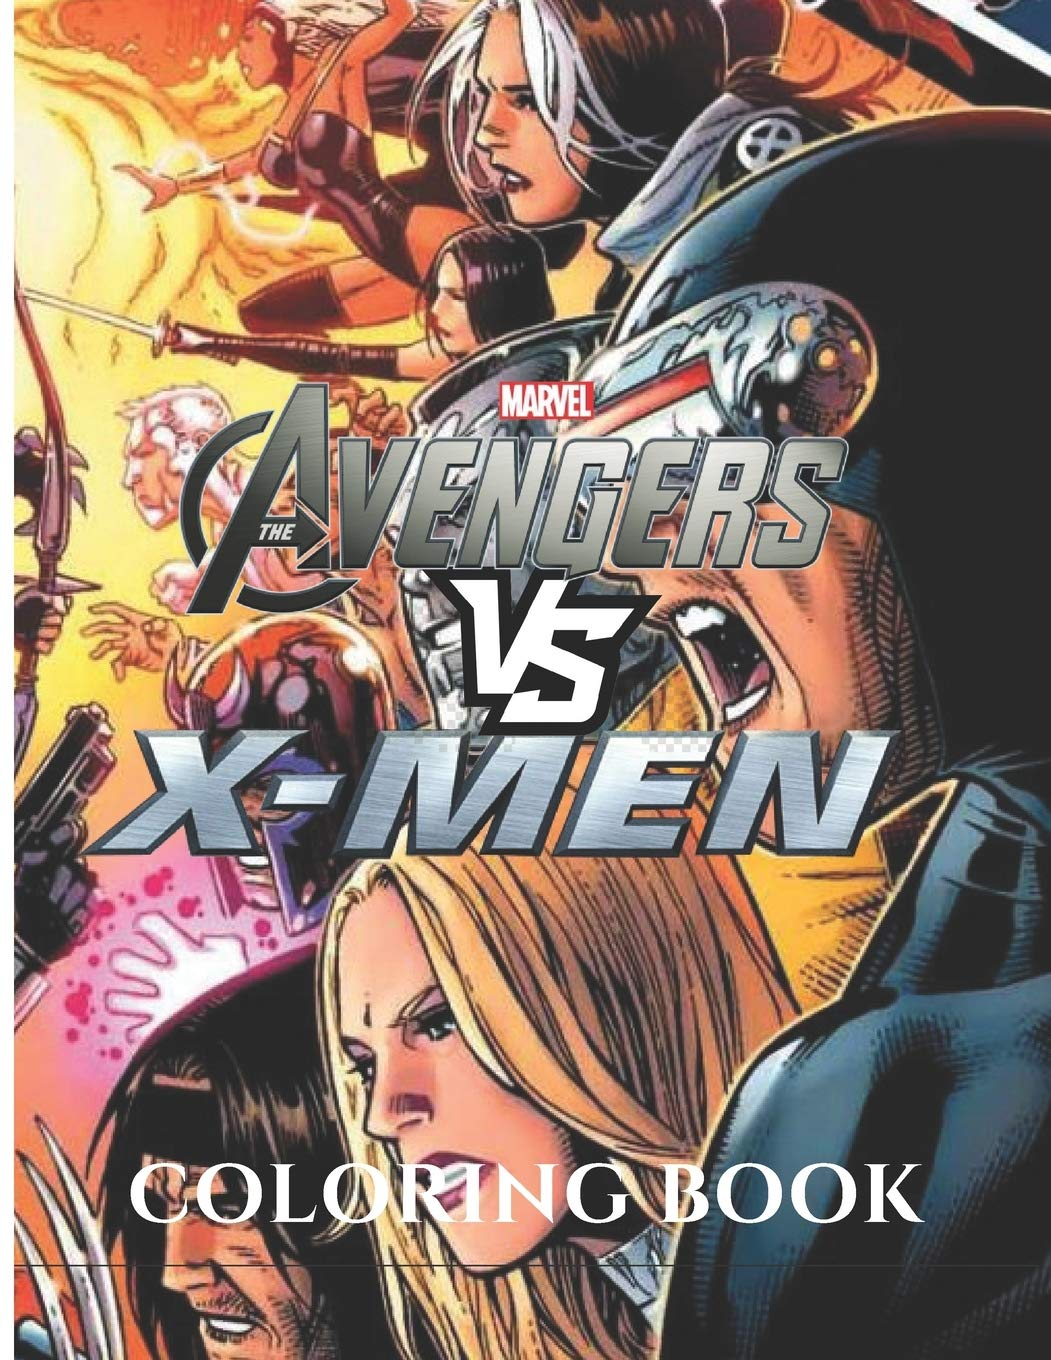 Avengers vs X-men: +50 latest high quality images of MARVEL for adults and kids